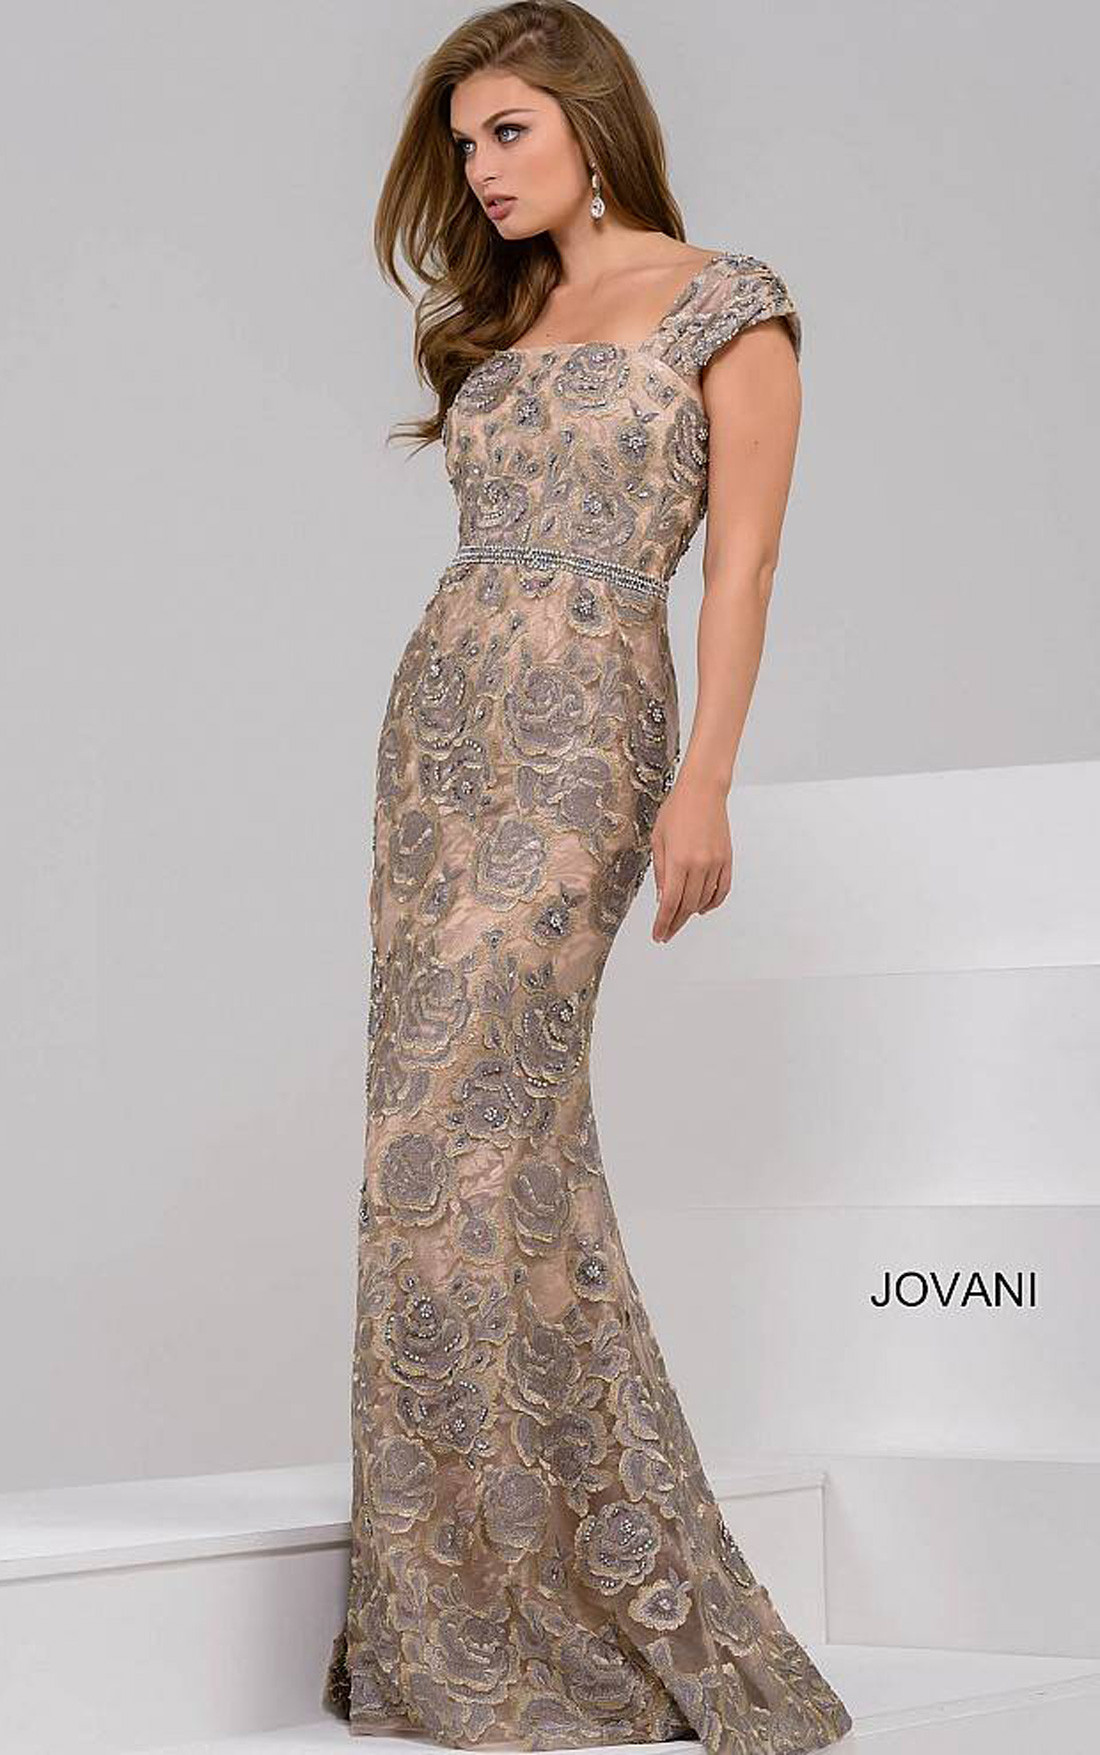 Jovani Dresses | Womens Grey Beaded Lace Floral Fitted Dress ...